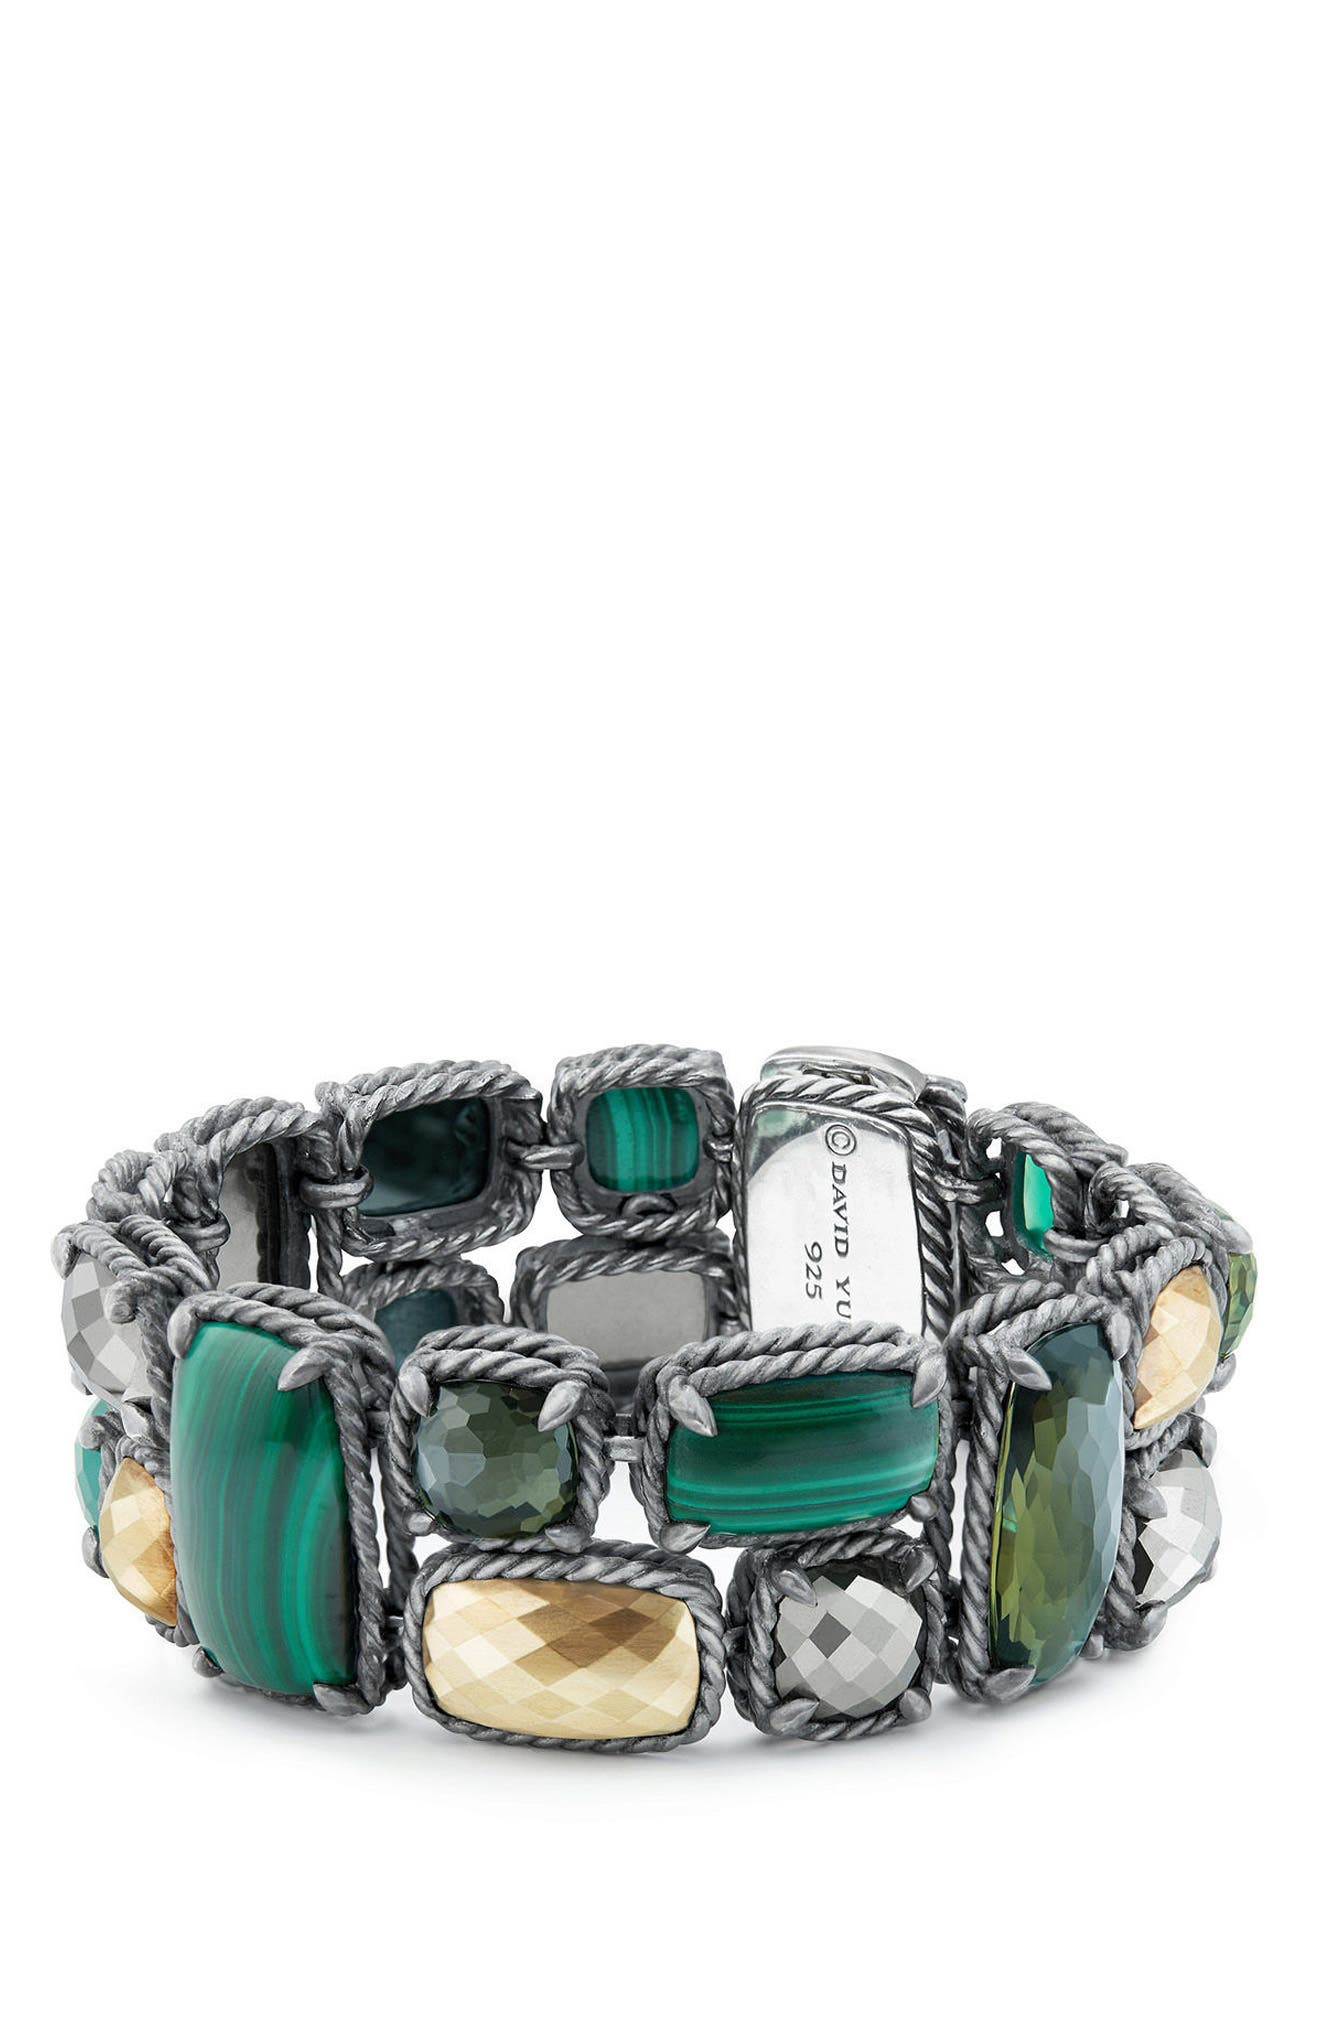 Main Image - David Yurman Chatelaine Mosaic Bracelet with 18K Gold